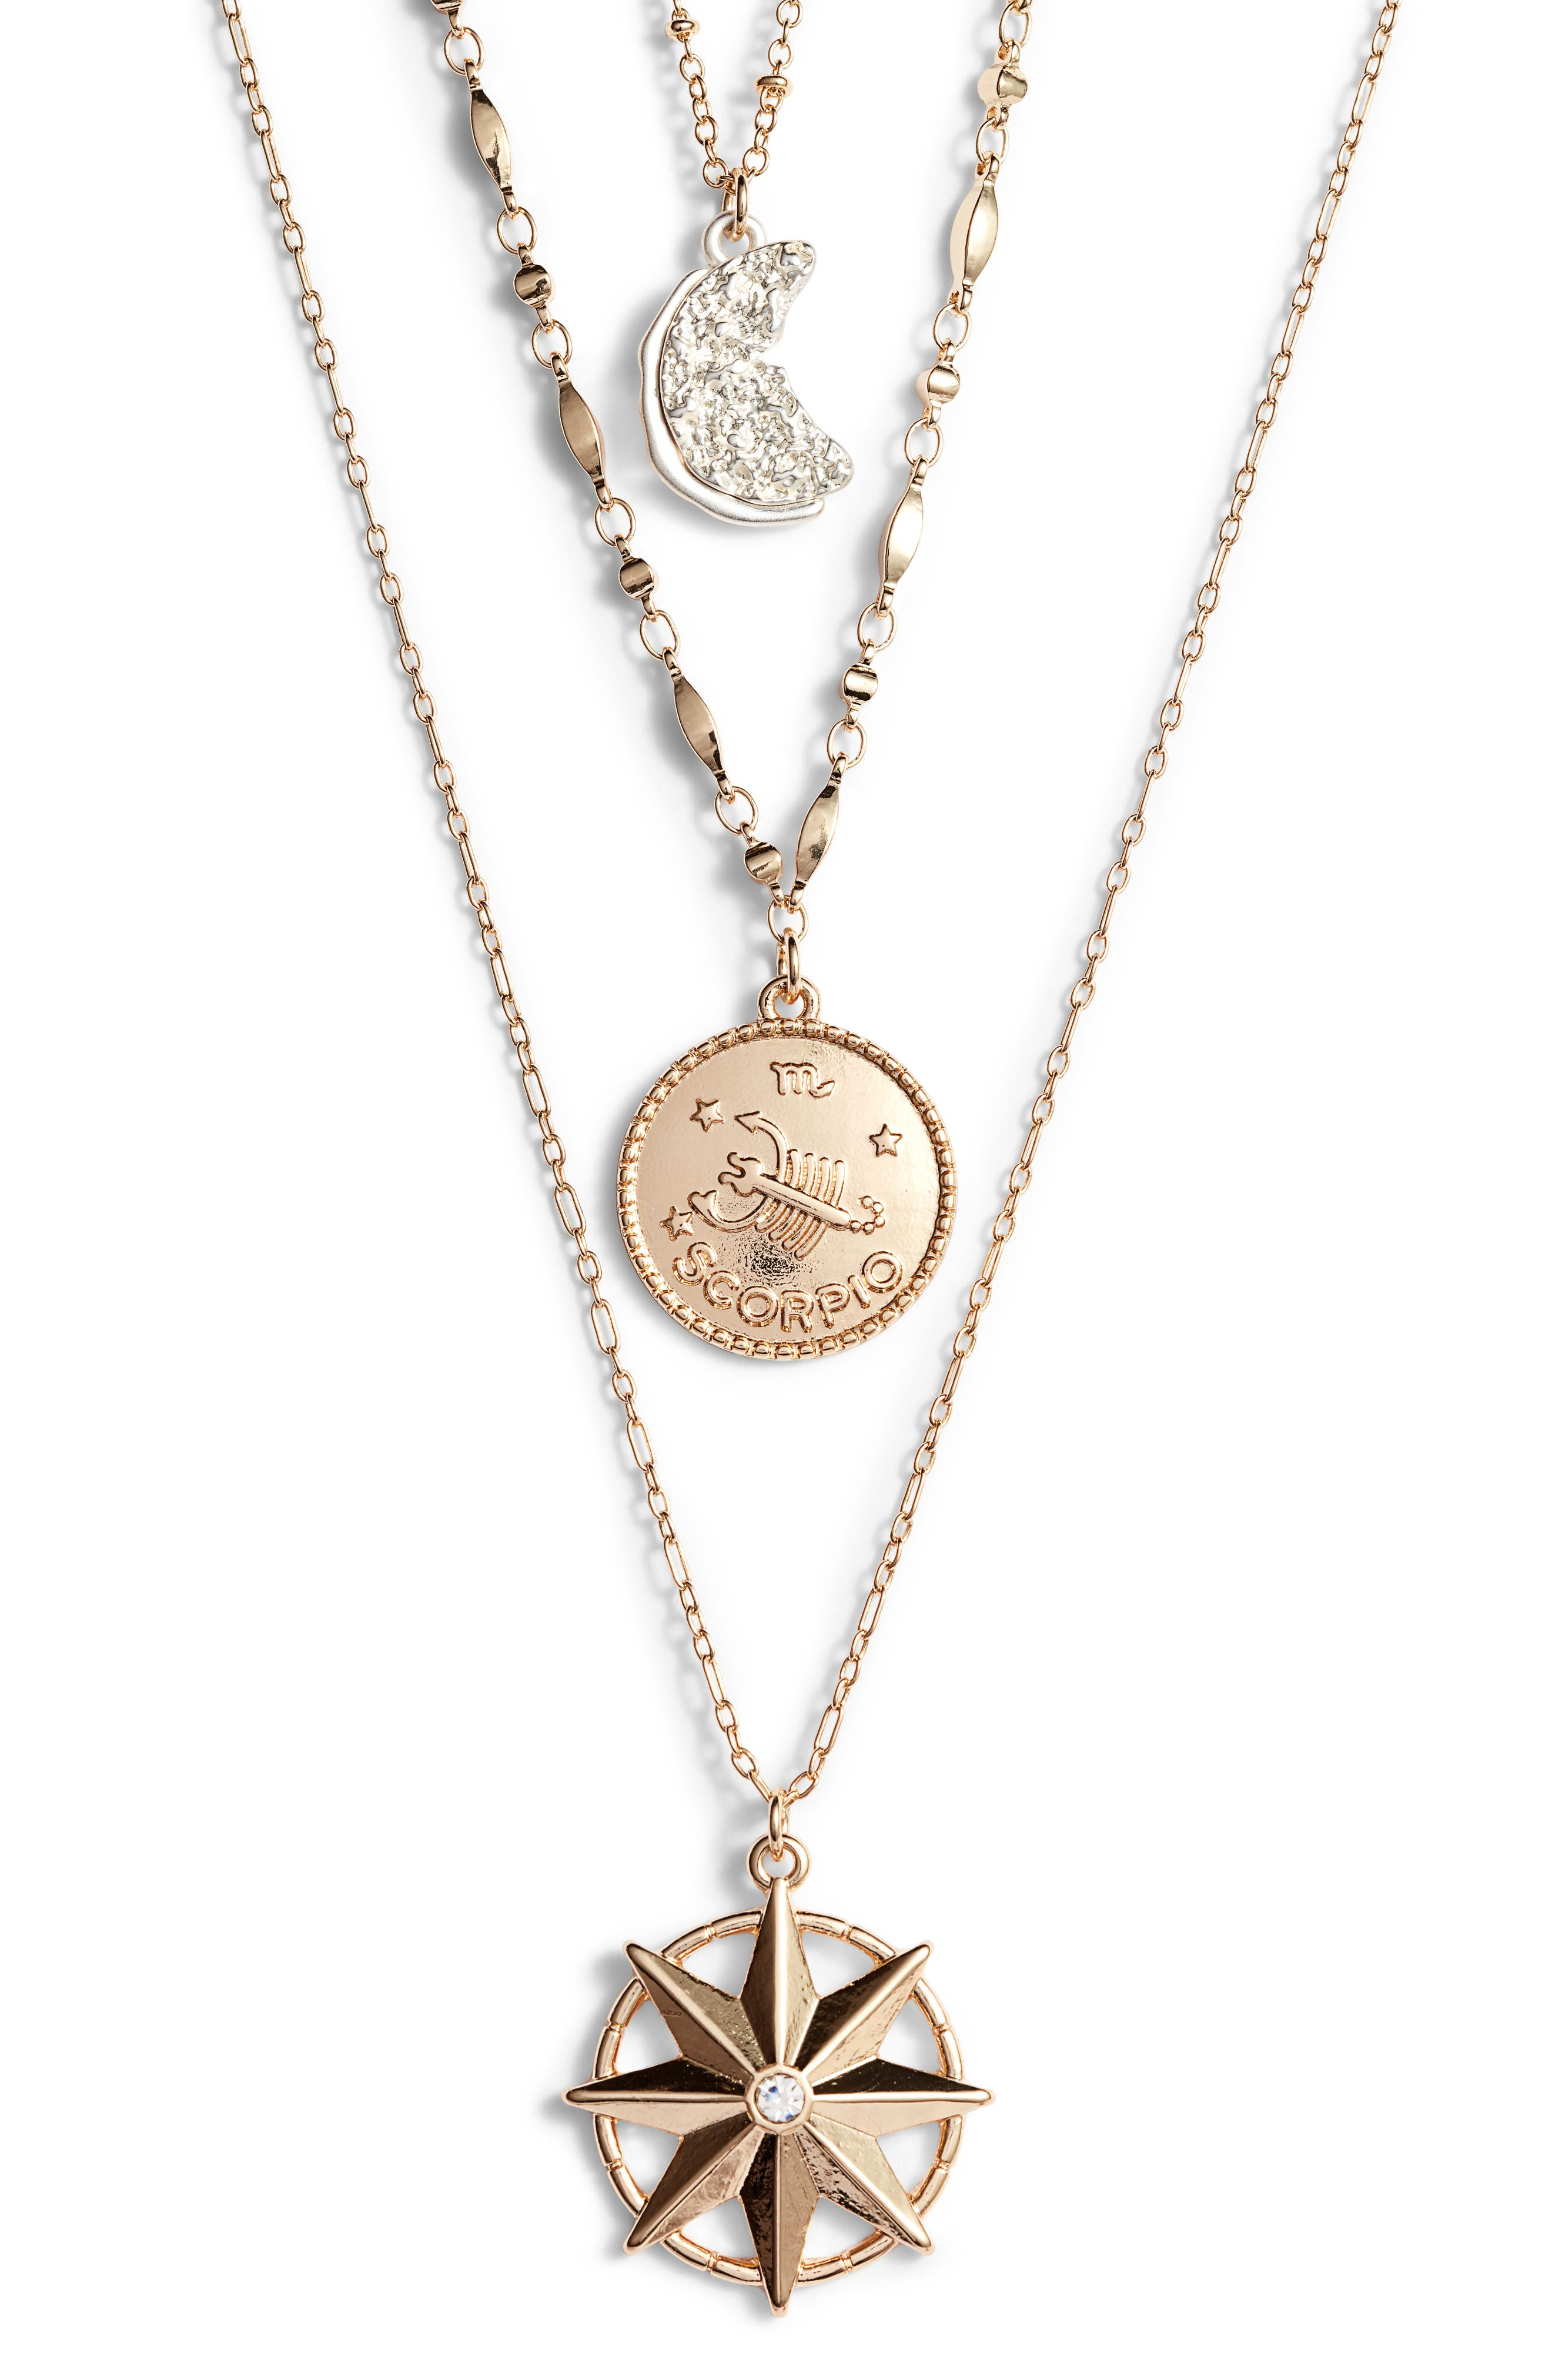 Scorpio Astrological Charm Layered Necklace